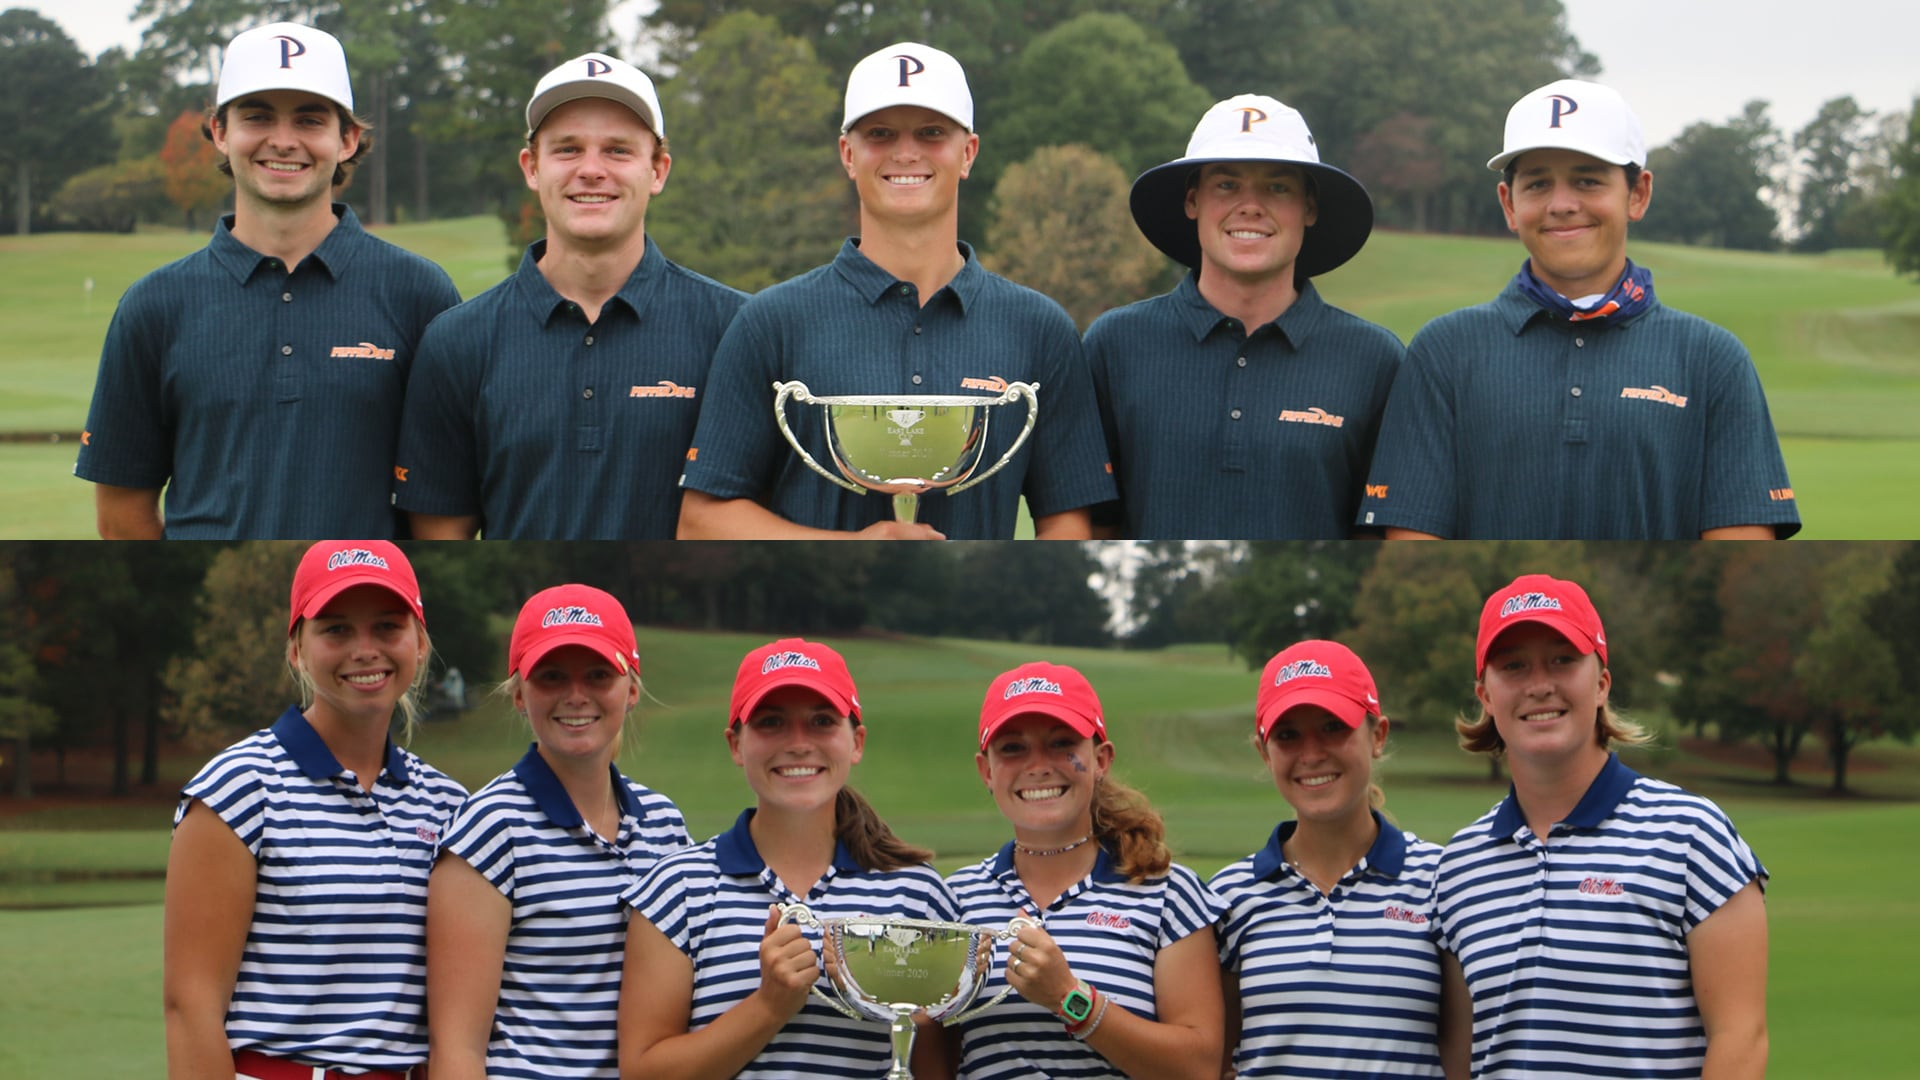 Winning men's team Pepperdine and women's Ole Miss